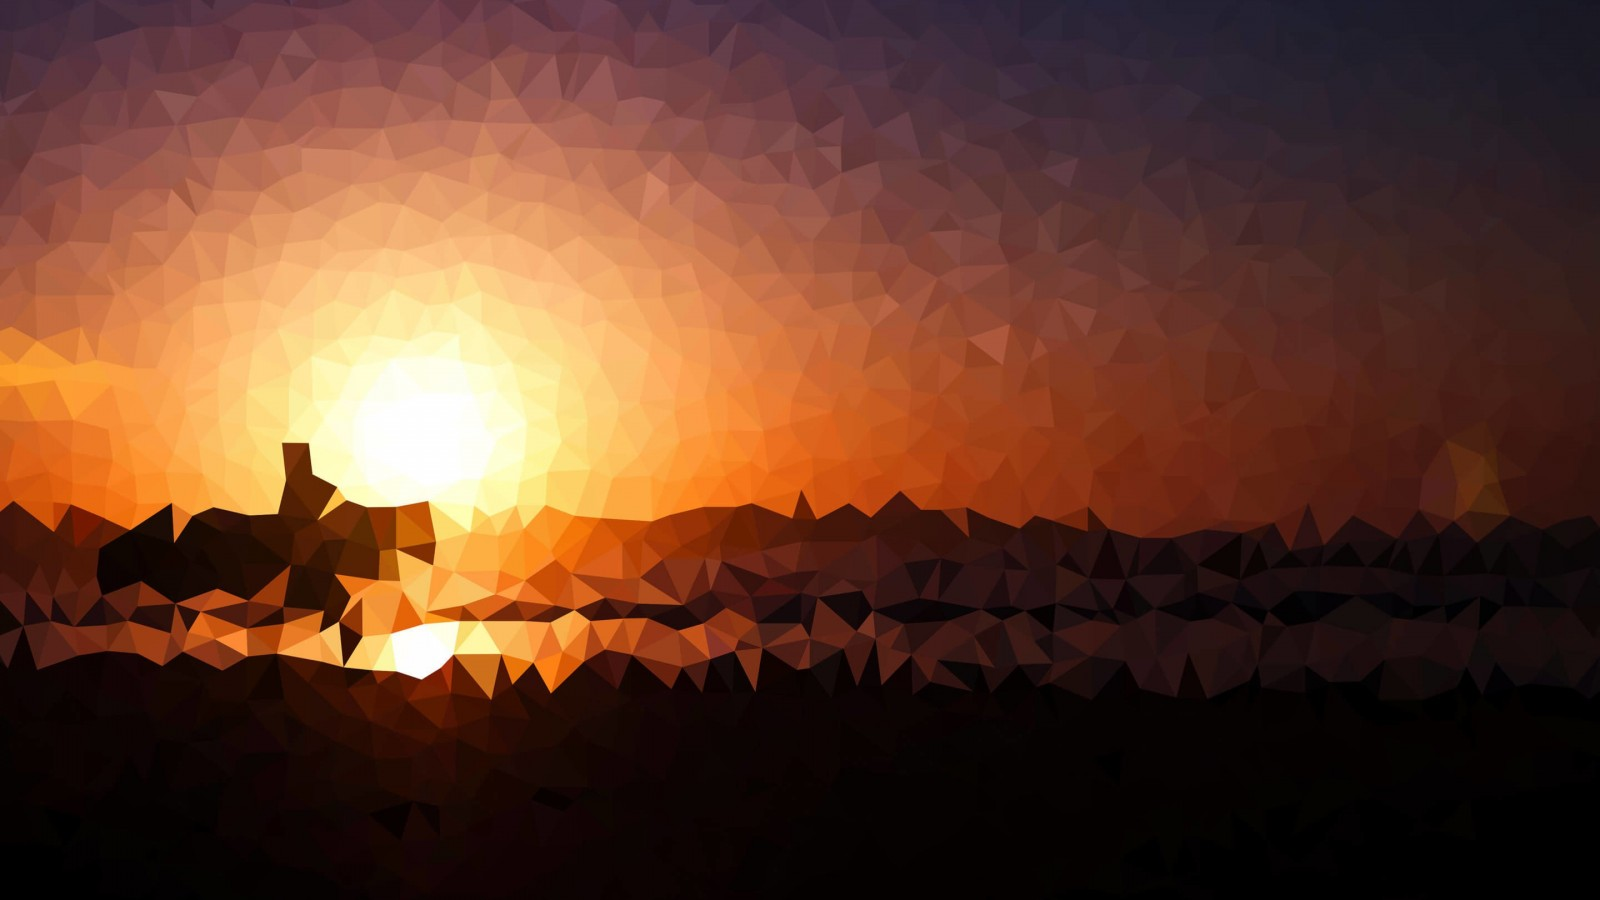 Low Poly Sunset Wallpaper for Desktop 1600x900